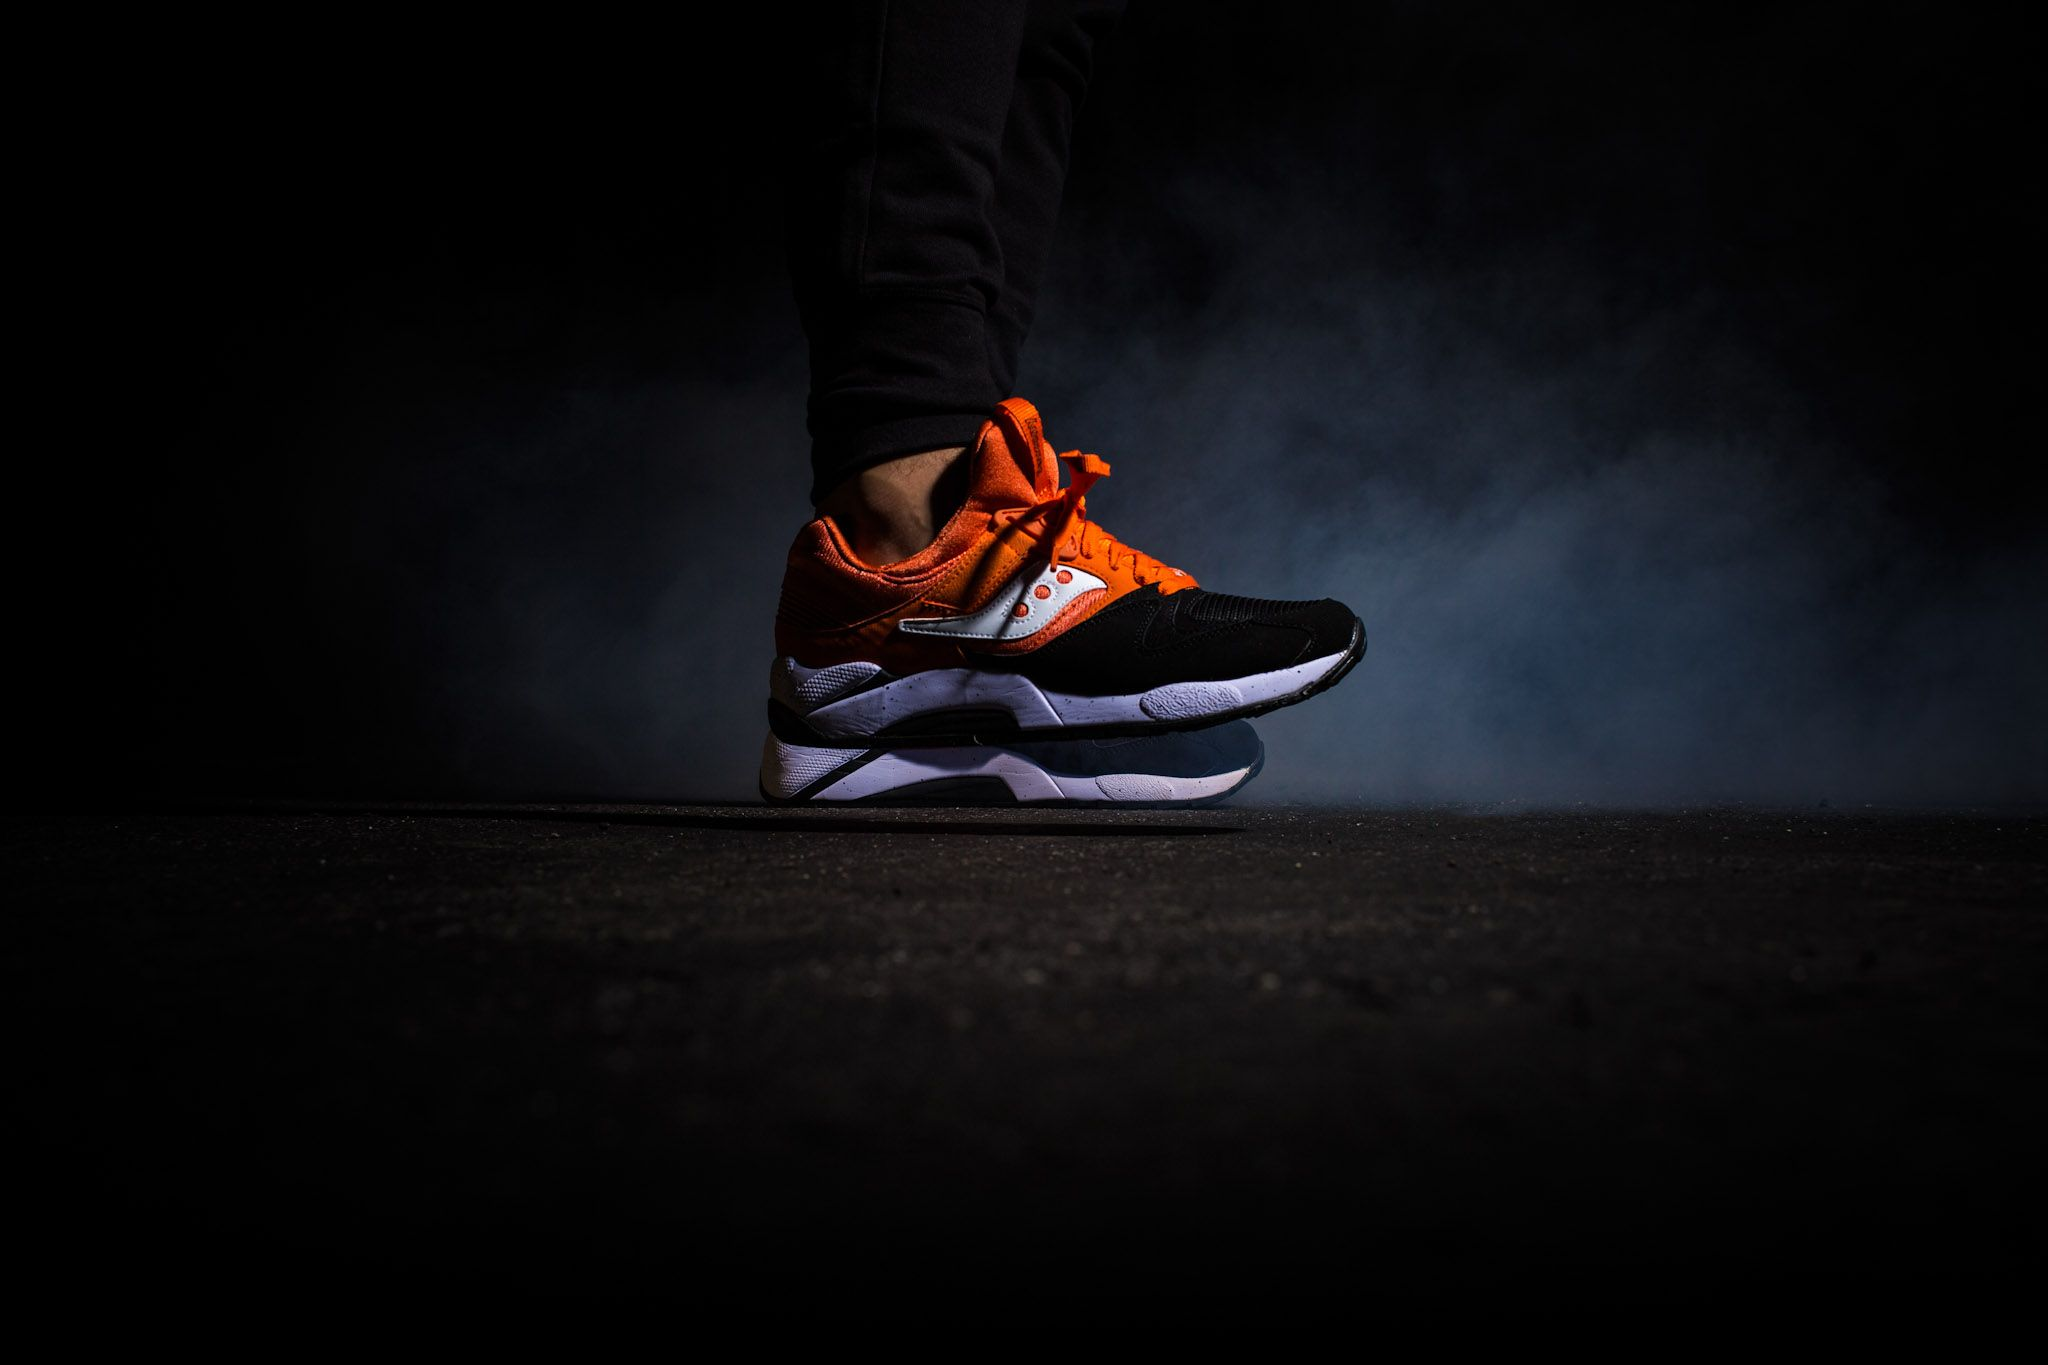 Saucony Originals Grid 9000 – Hallowed Pack,  #Grid9000 #HallowedPack #SauconyOriginals #sneaker, #agpos, #sneaker, #sneakers, #sneakerhead, #solecollector, #sneakerfreaker,  #nicekicks, #kicks, #kotd, #kicks4eva #kicks0l0gy, #kicksonfire, #womft, #walklikeus, #schuhe, #turnschuhe, #yeezy, #nike, #adidas, #puma, #asics, #newbalance #jordan, #airjordan, #kicks